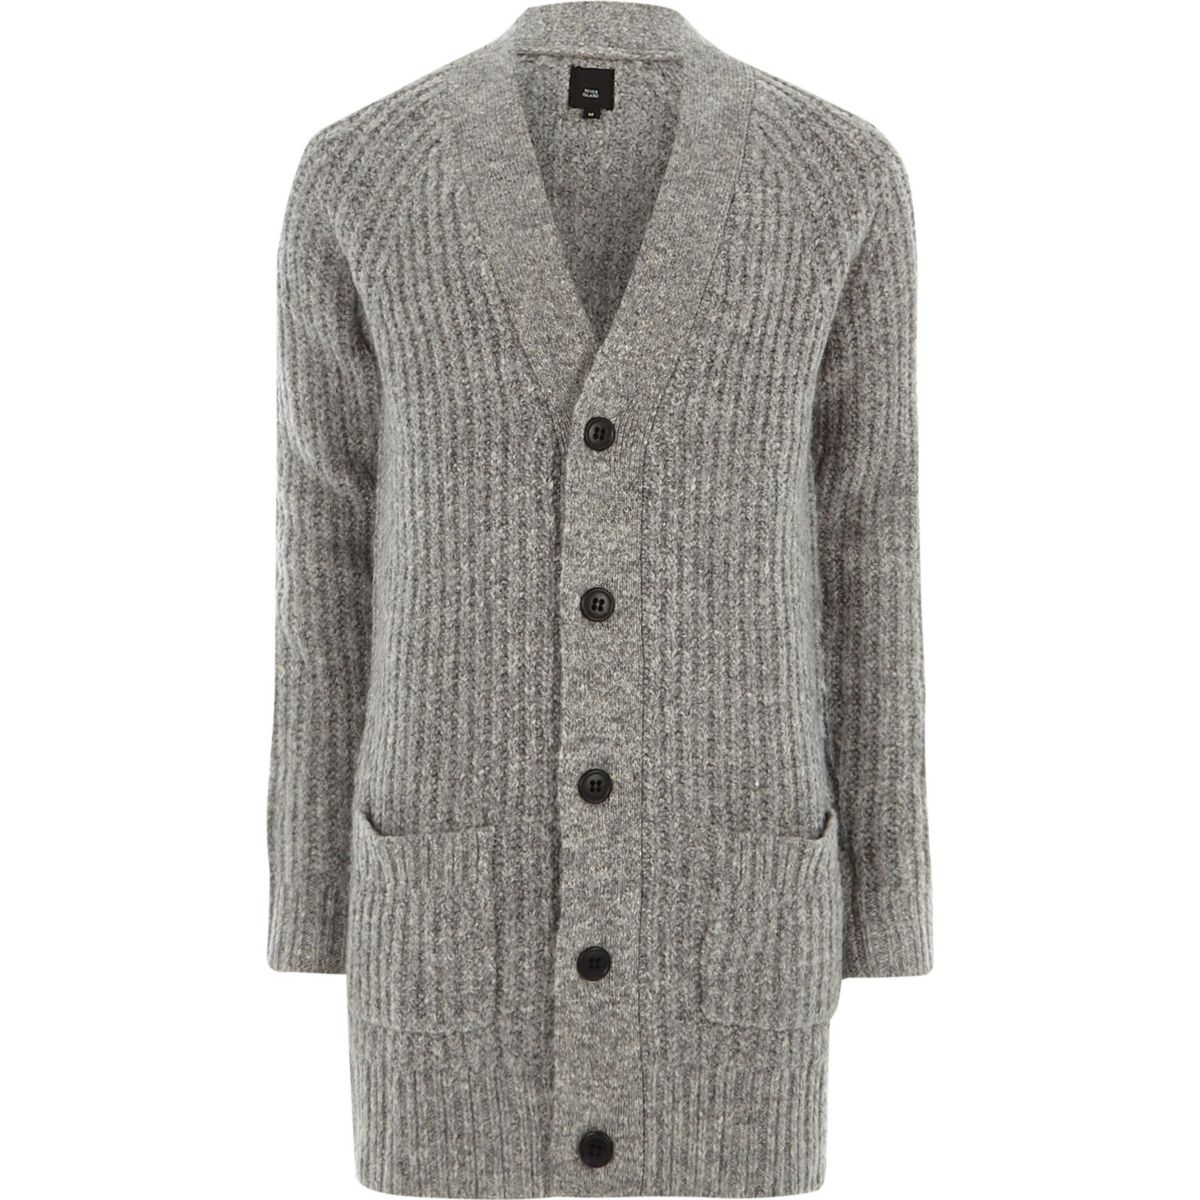 Grey long sleeve longline knit cardigan - Jumpers & Cardigans ...